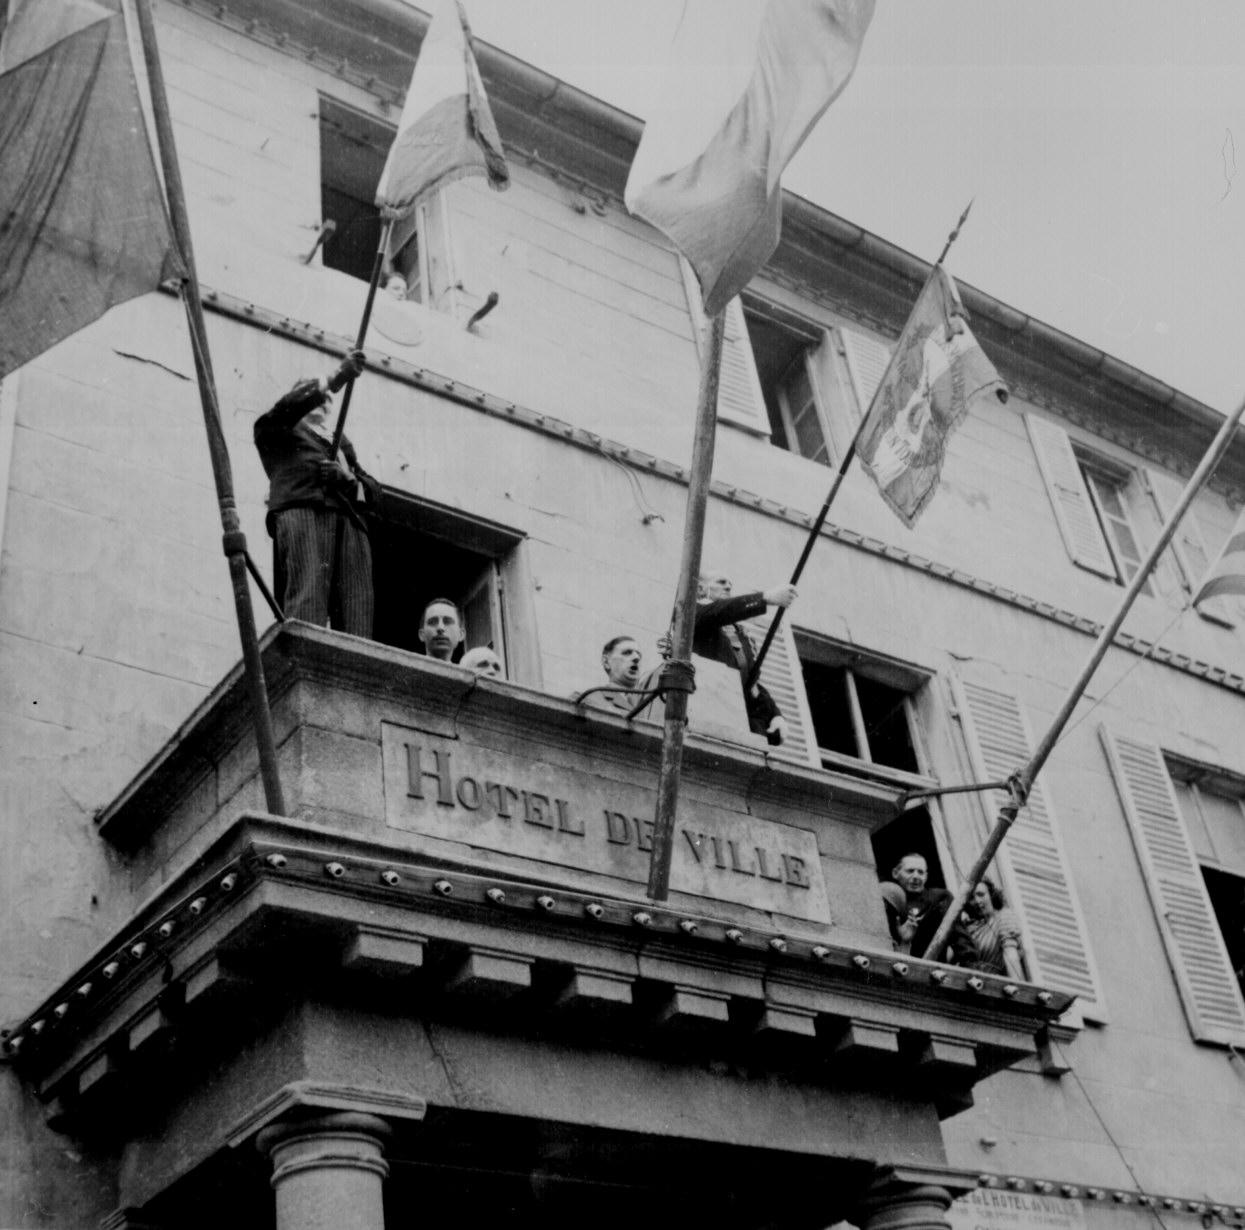 General Charles de Gaulle addressing a crowd from the balcony of the Hotel de Ville, 1944.